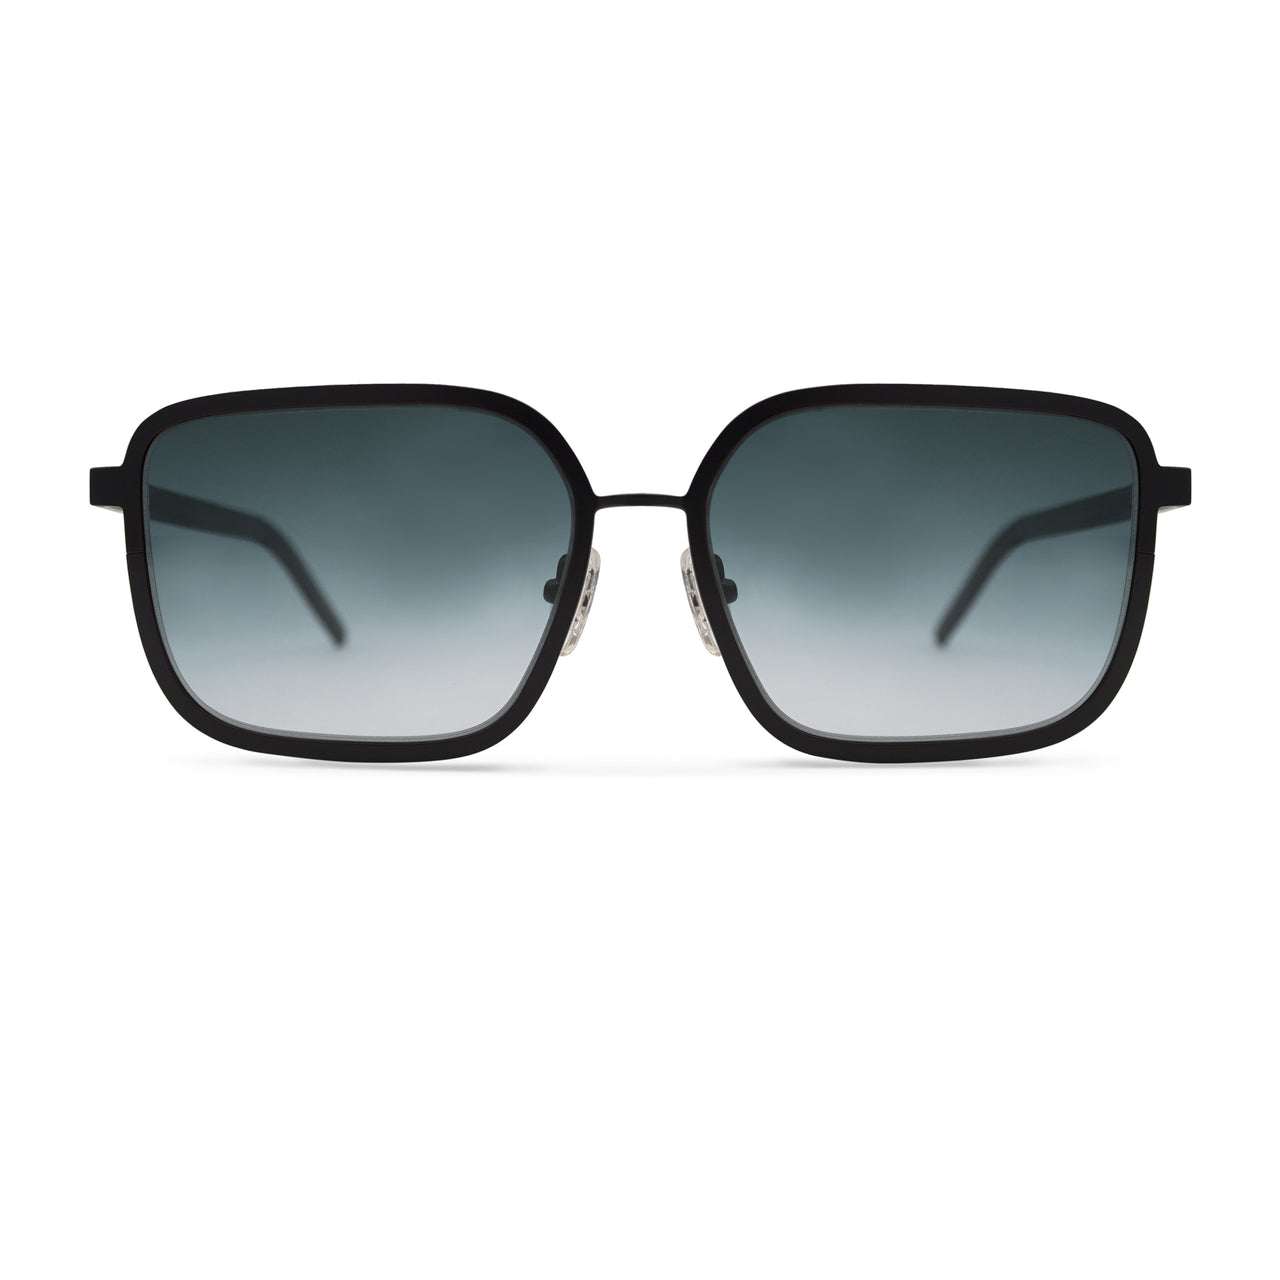 Metal. Gloss Black. Marine Lens. - BLYSZAK eyewear eyewear - eyewear, optical, sunglasses